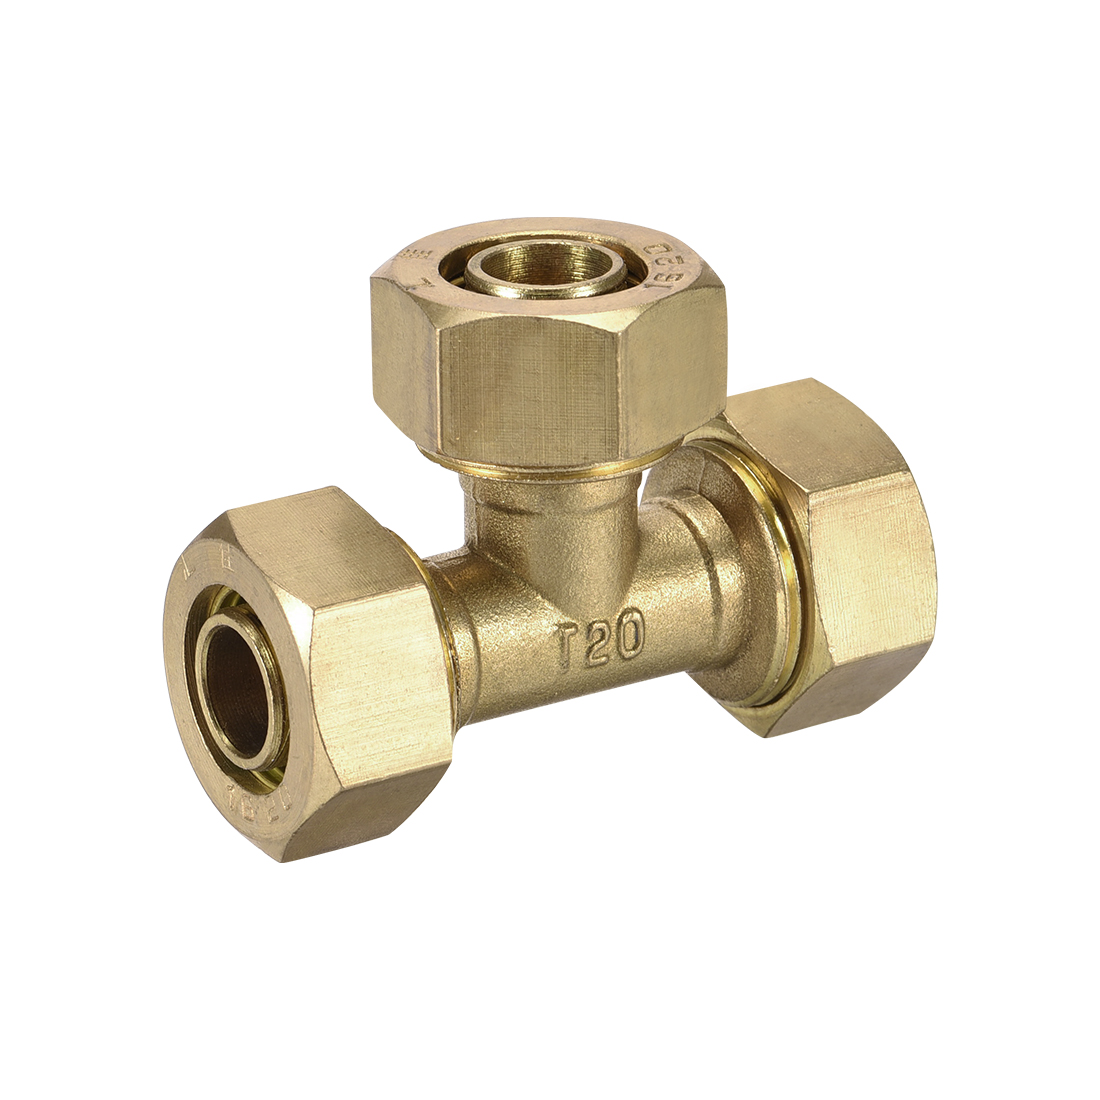 Brass Compression Tube Fitting Tee 5/8 x 5/8 x 5/8 Tube ID Flared Fitting